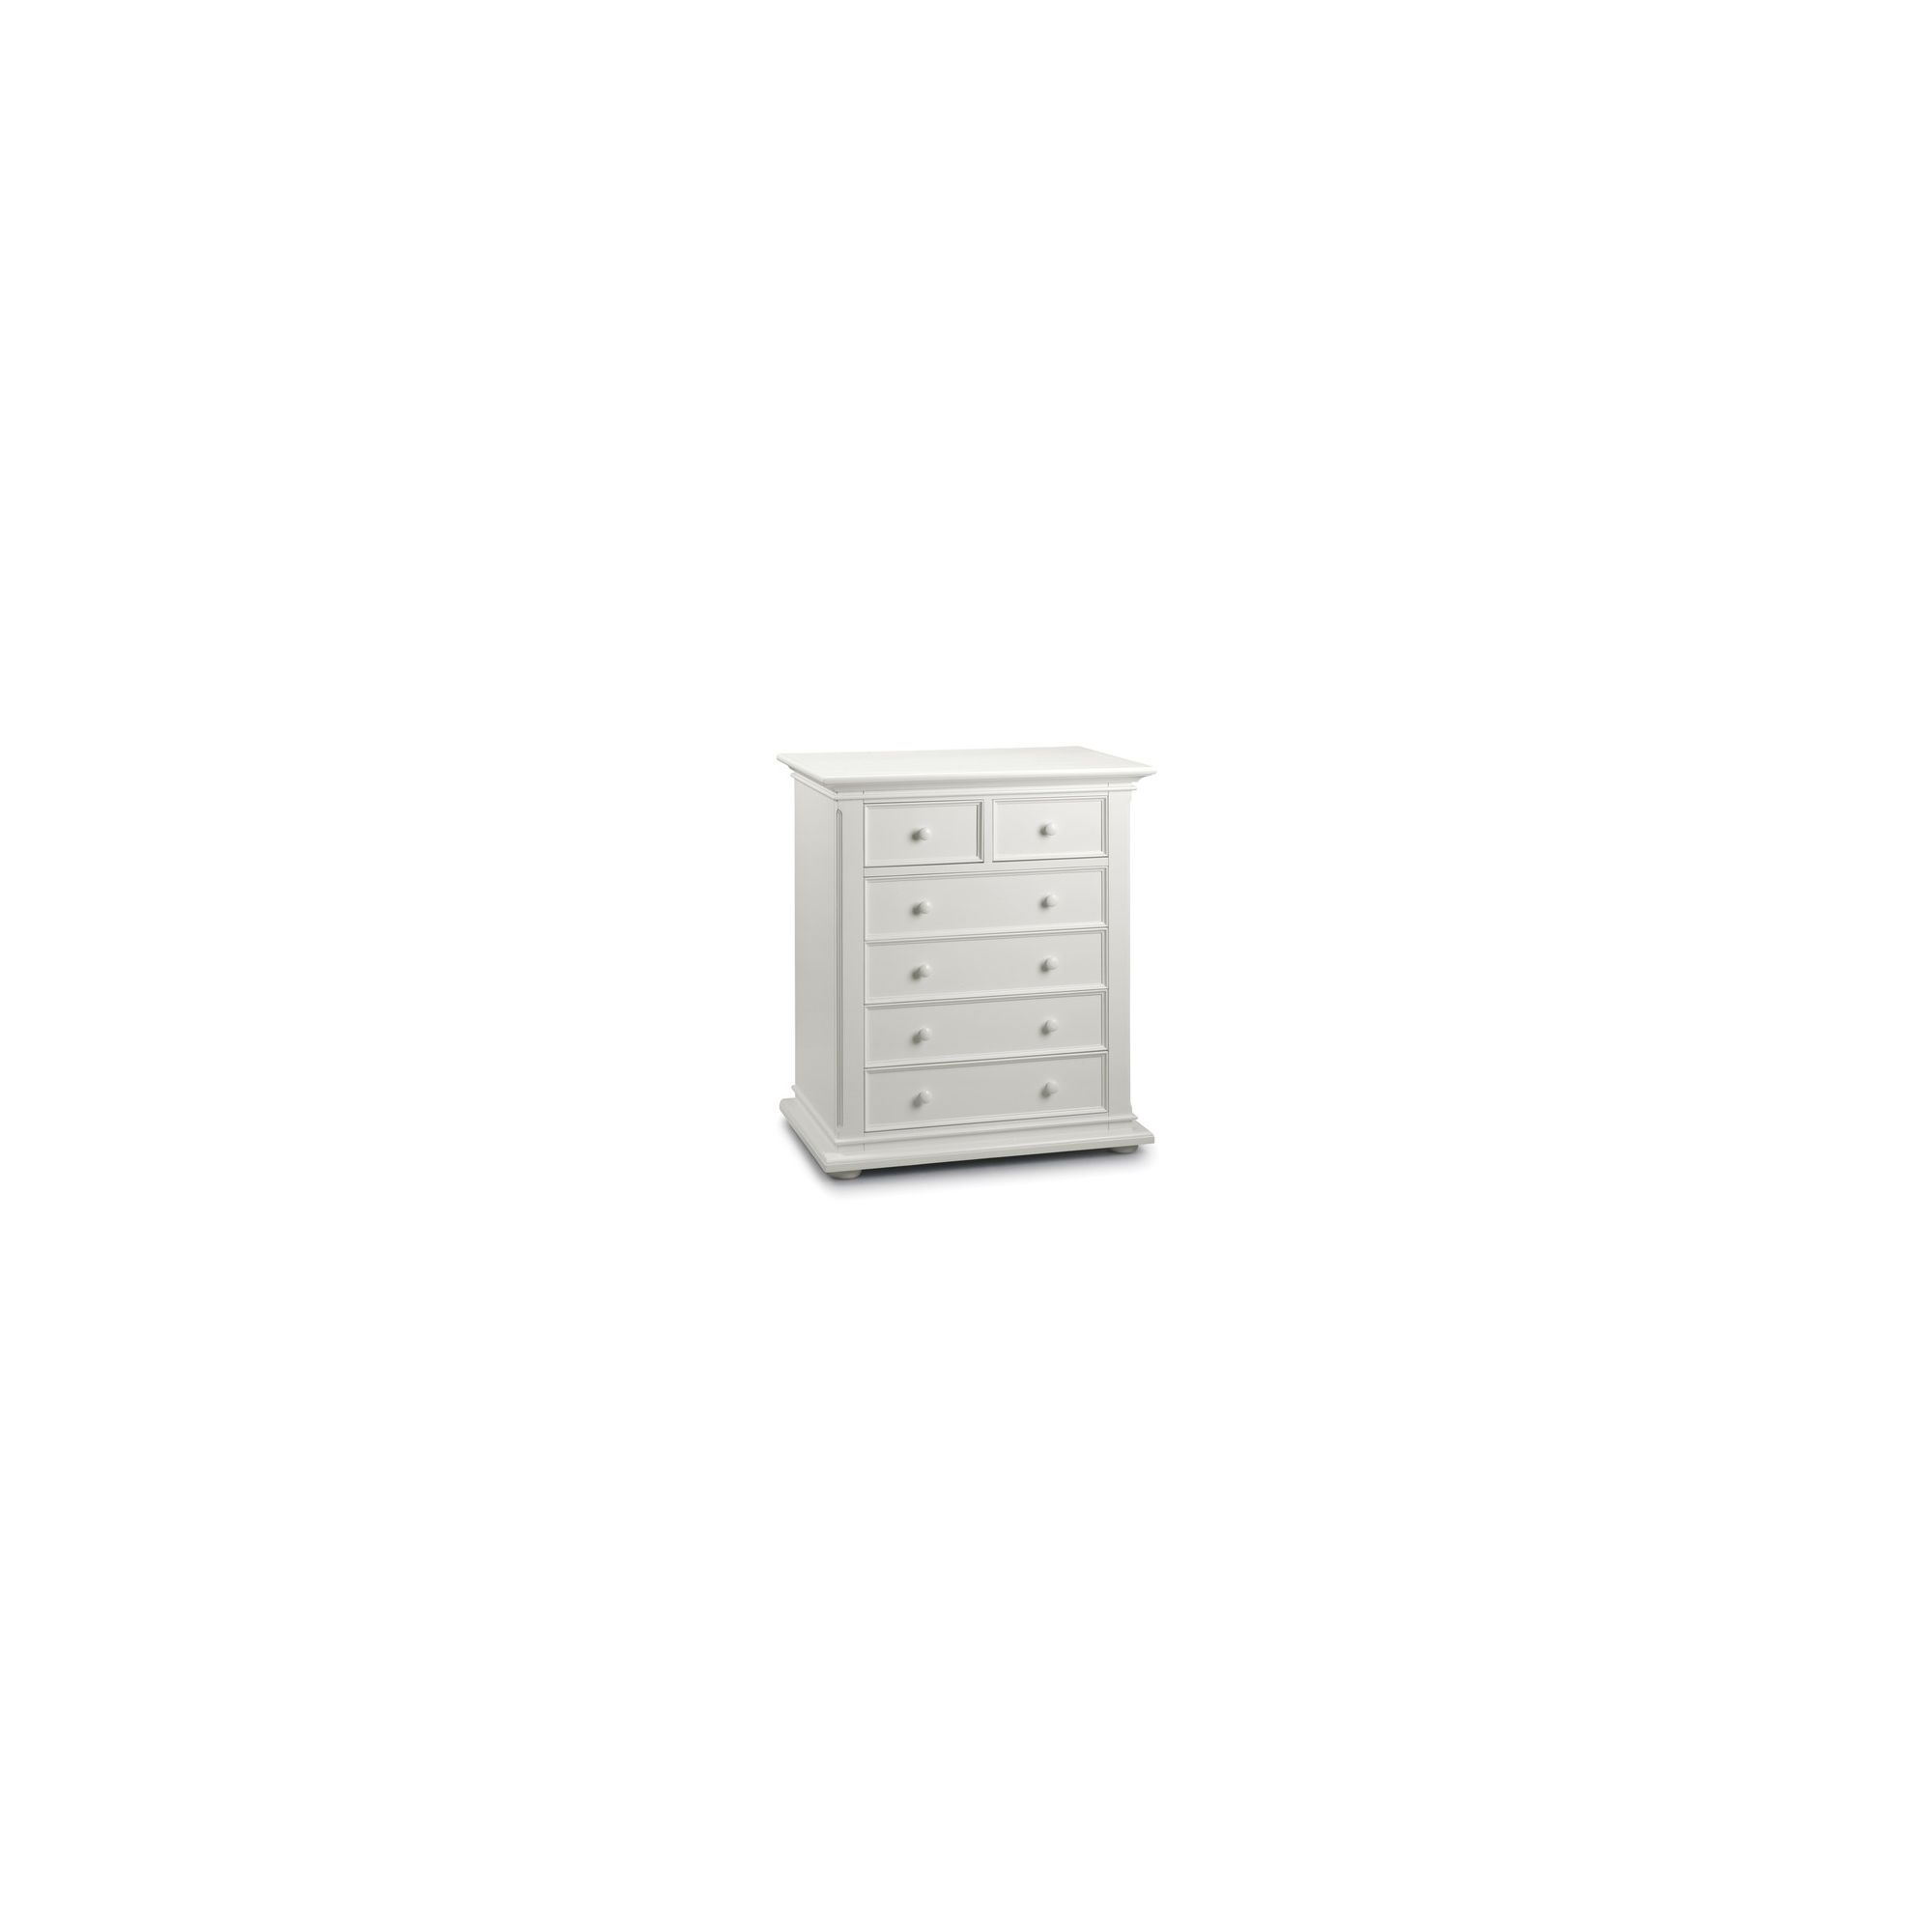 Julian Bowen Josephine 6 Drawer Chest in White at Tescos Direct